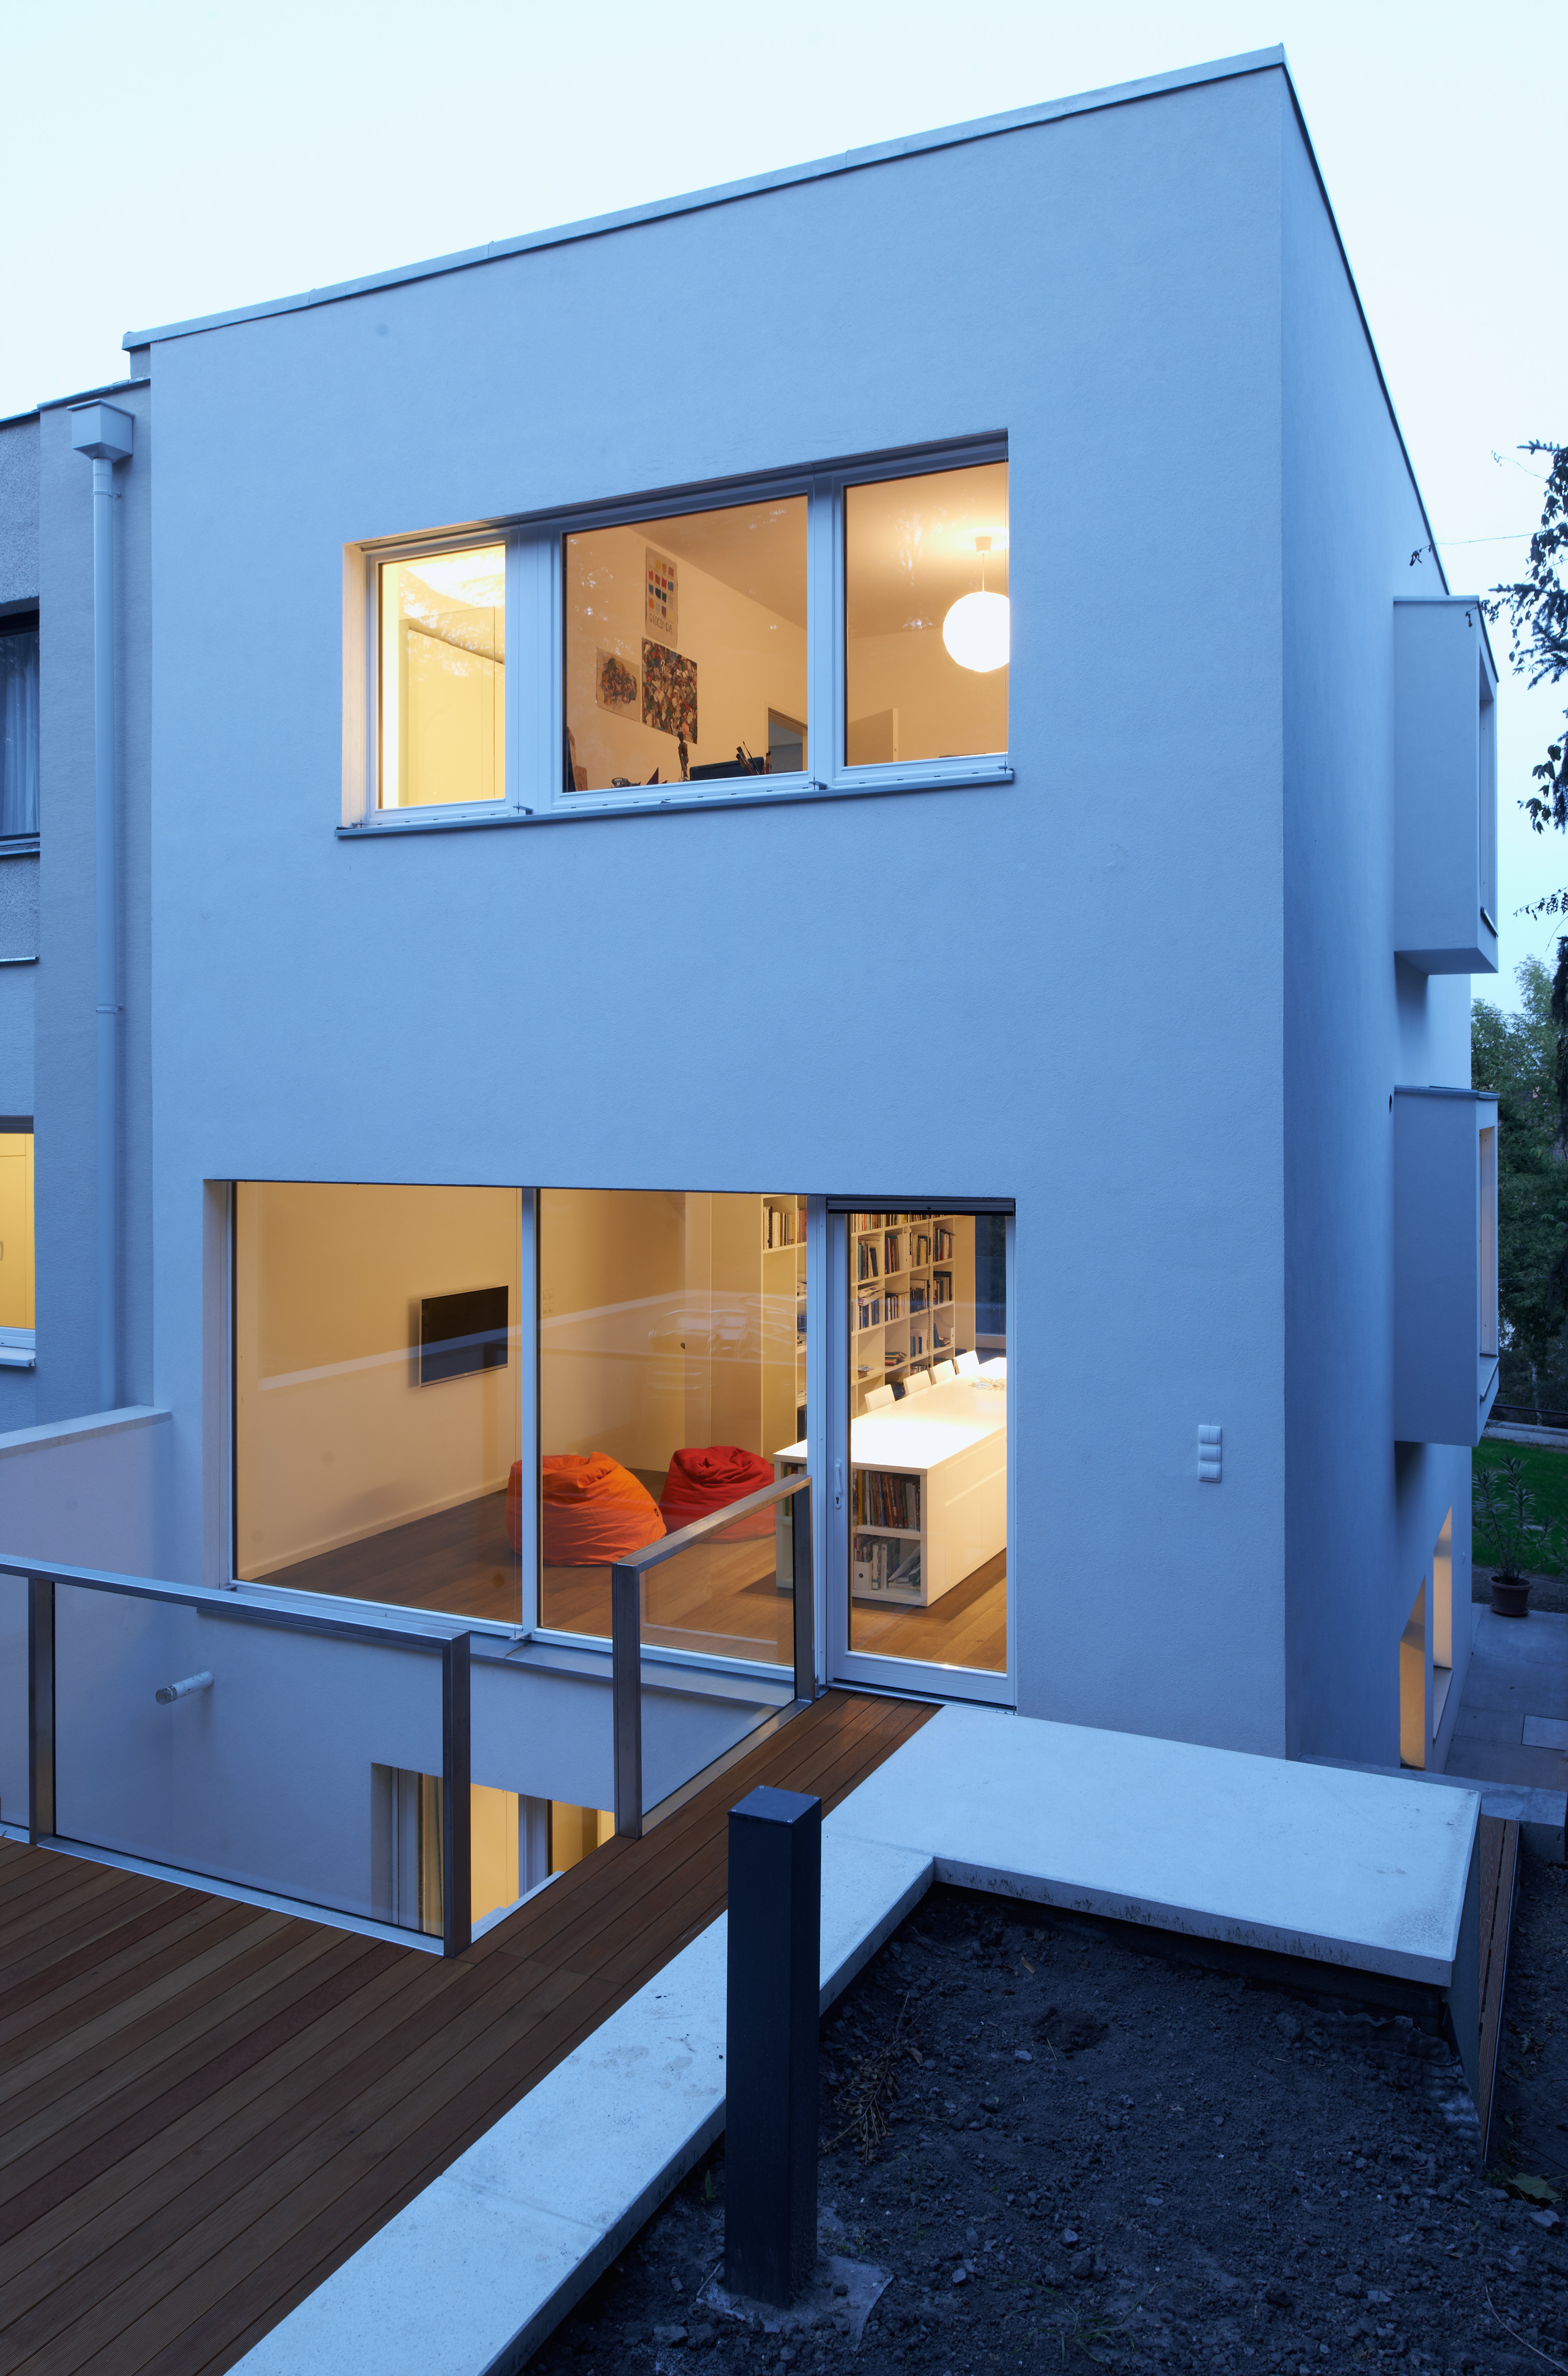 3h architecture s house budapest